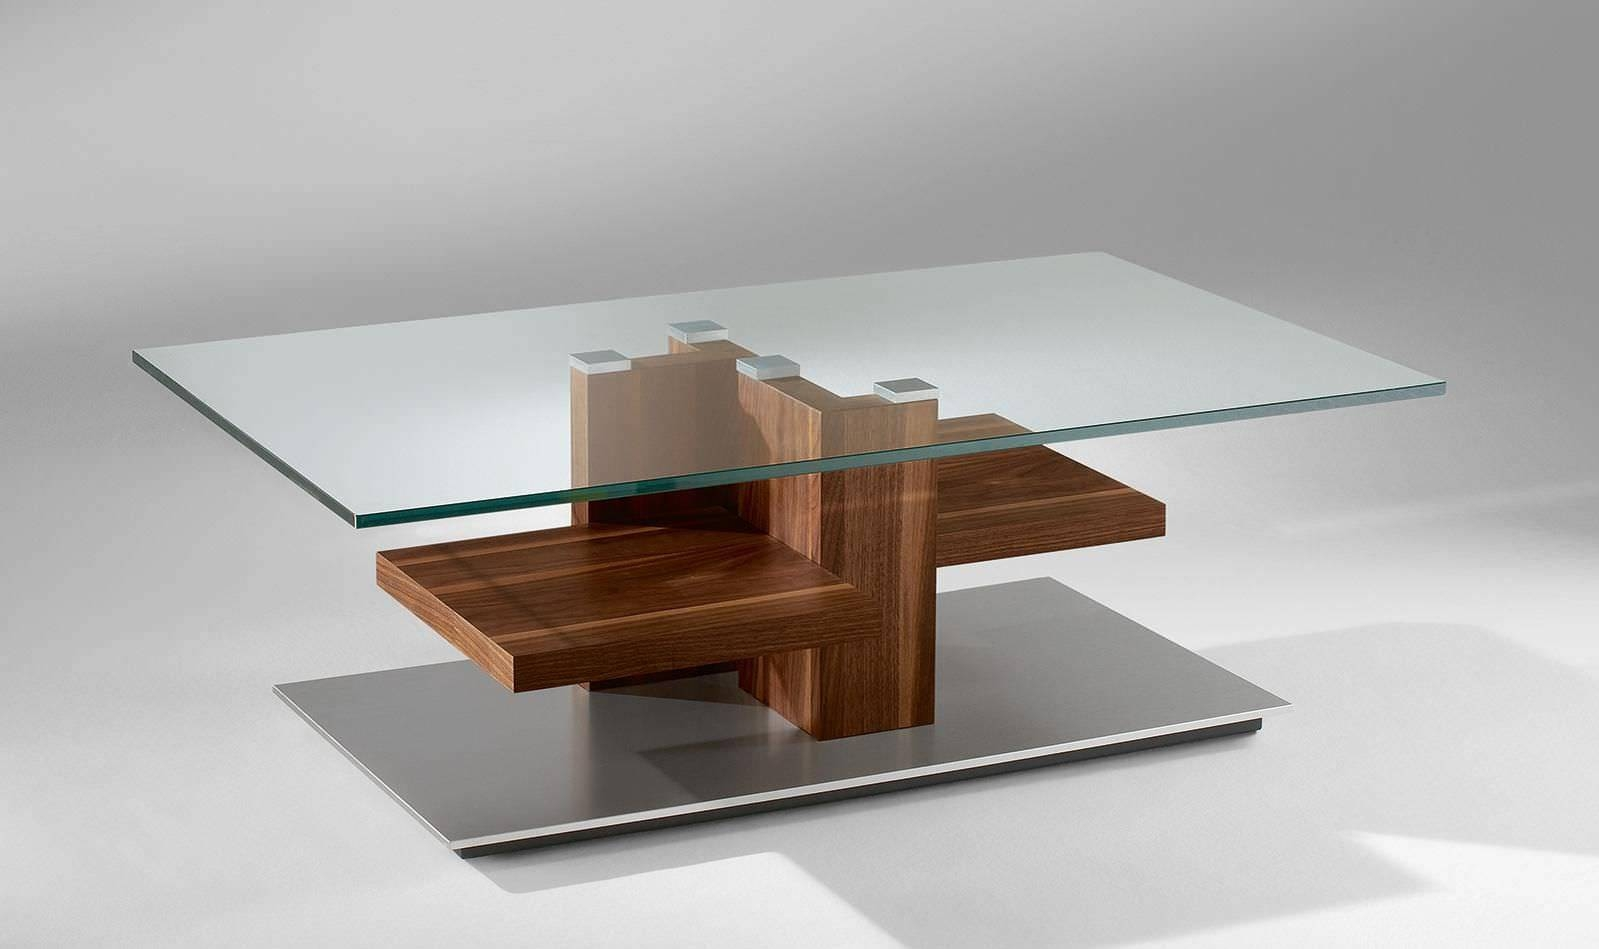 Contemporary Coffee Table / Wooden / Glass / Rectangular - 4424 inside Contemporary Coffee Table (Image 12 of 30)